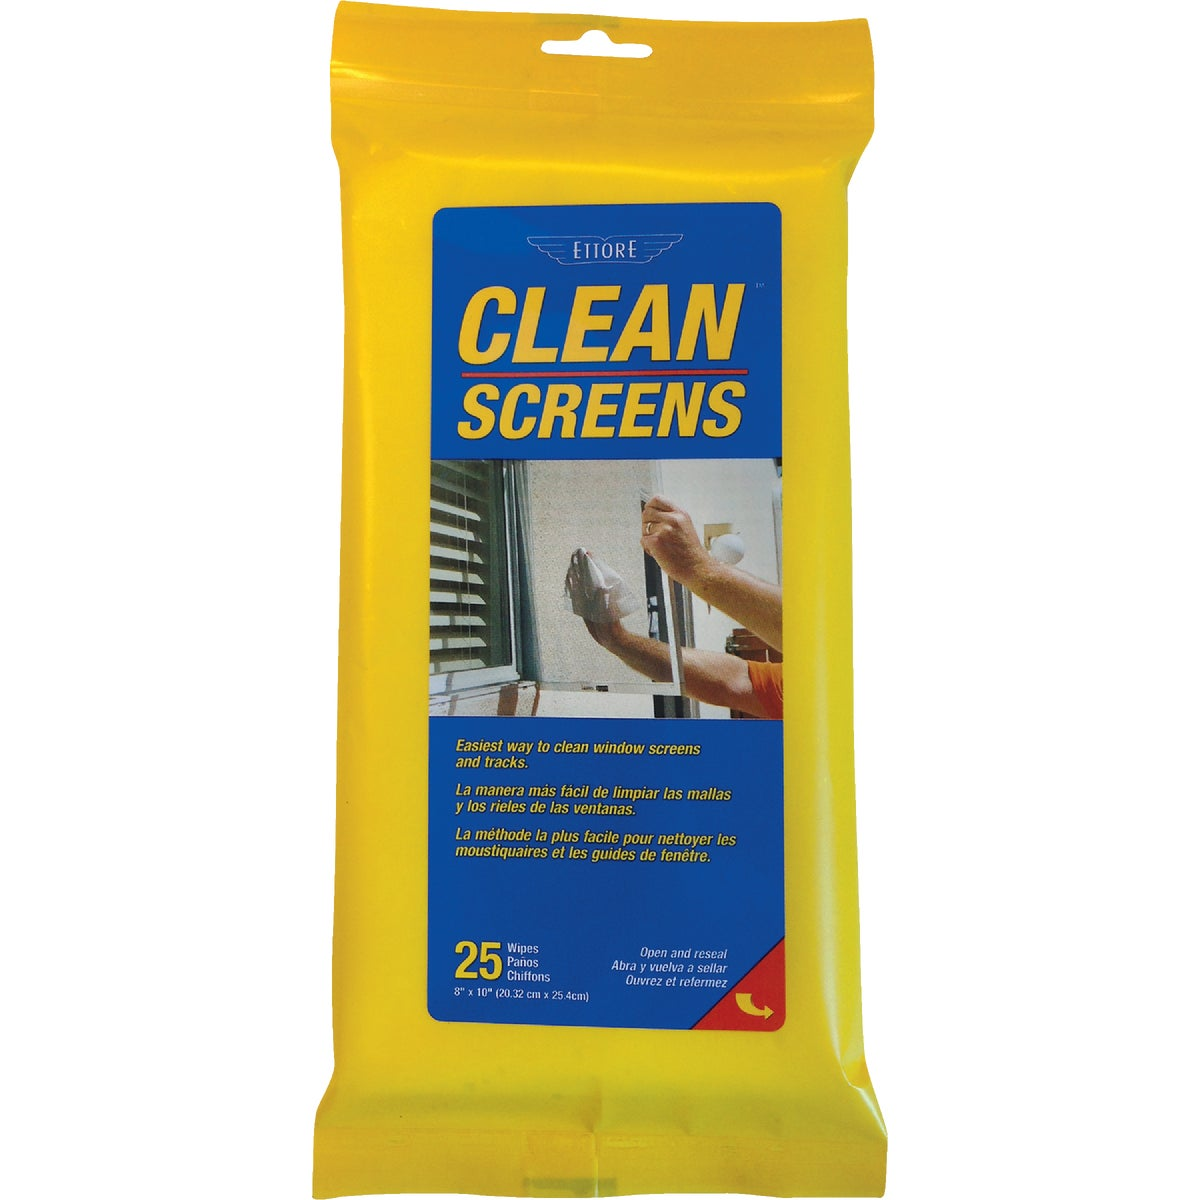 WNDOW SCREEN CLEAN WIPES - 30155 by Ettore Products Co